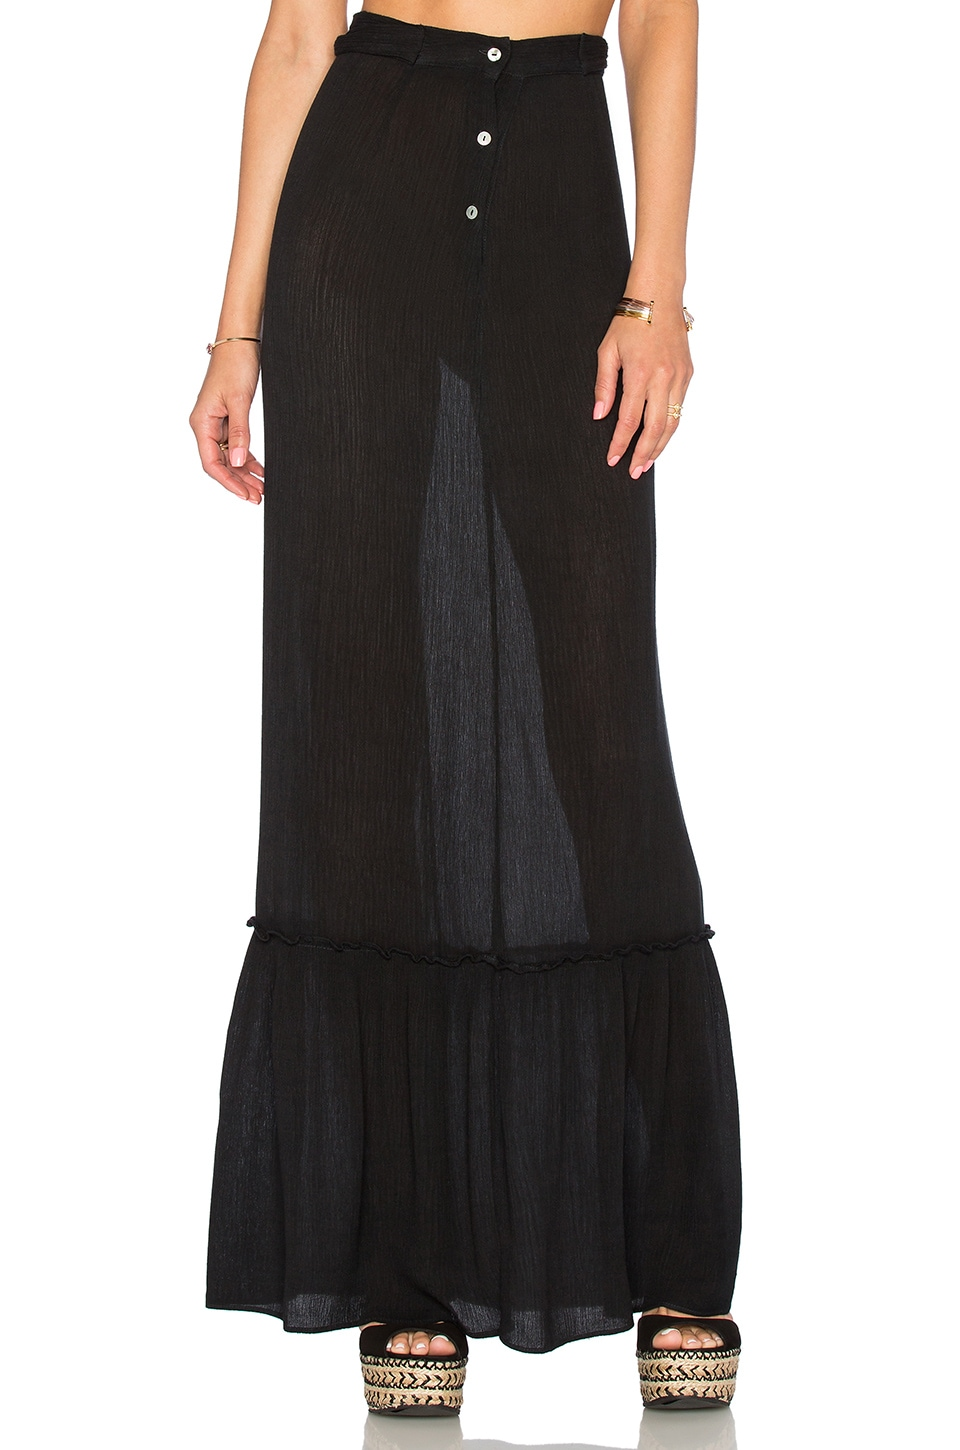 Blue Life Perfect Waist Maxi Skirt in Onyx